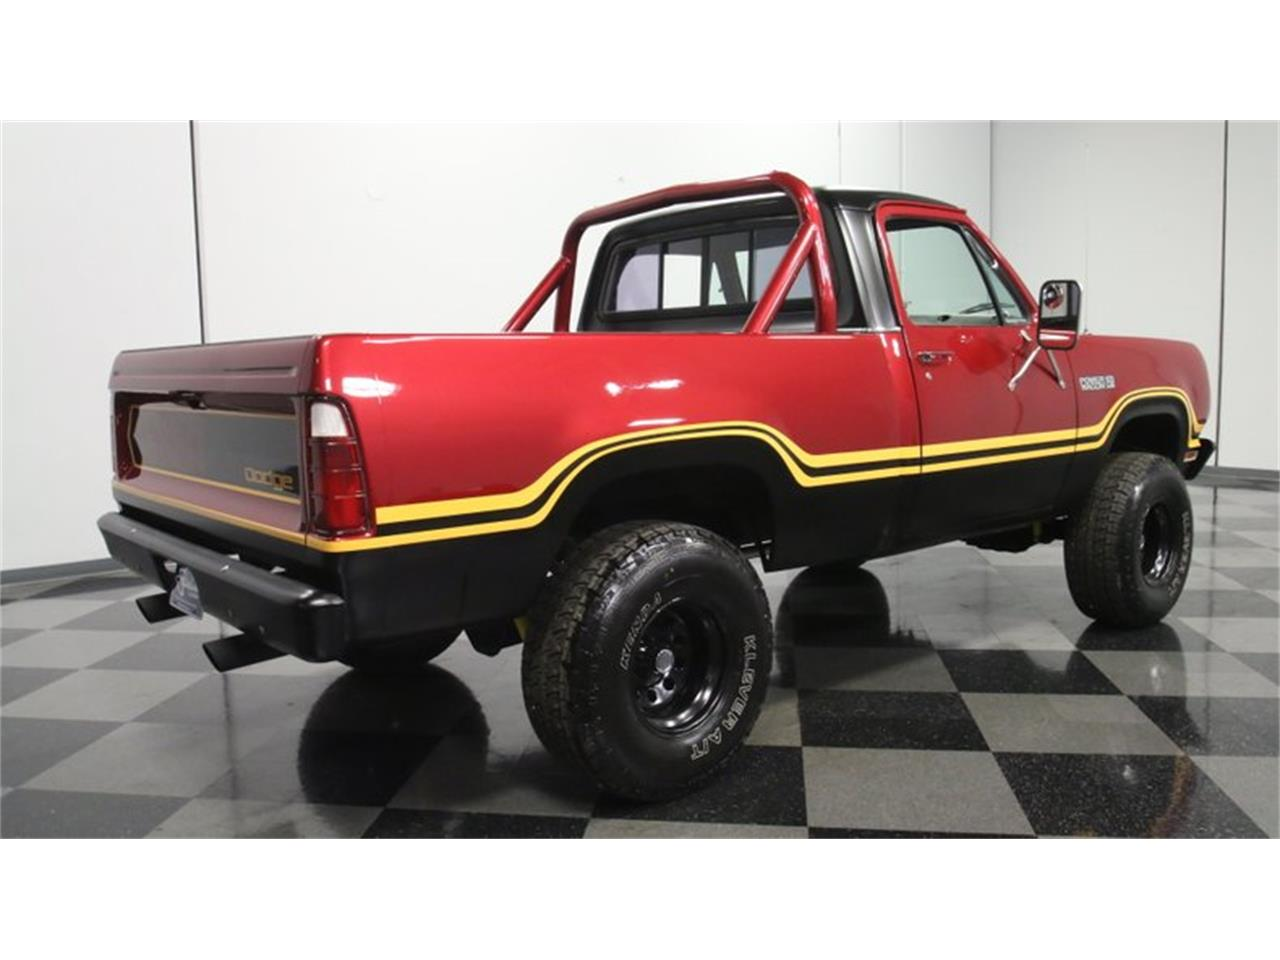 1978 Dodge Power Wagon for sale in Lithia Springs, GA – photo 14